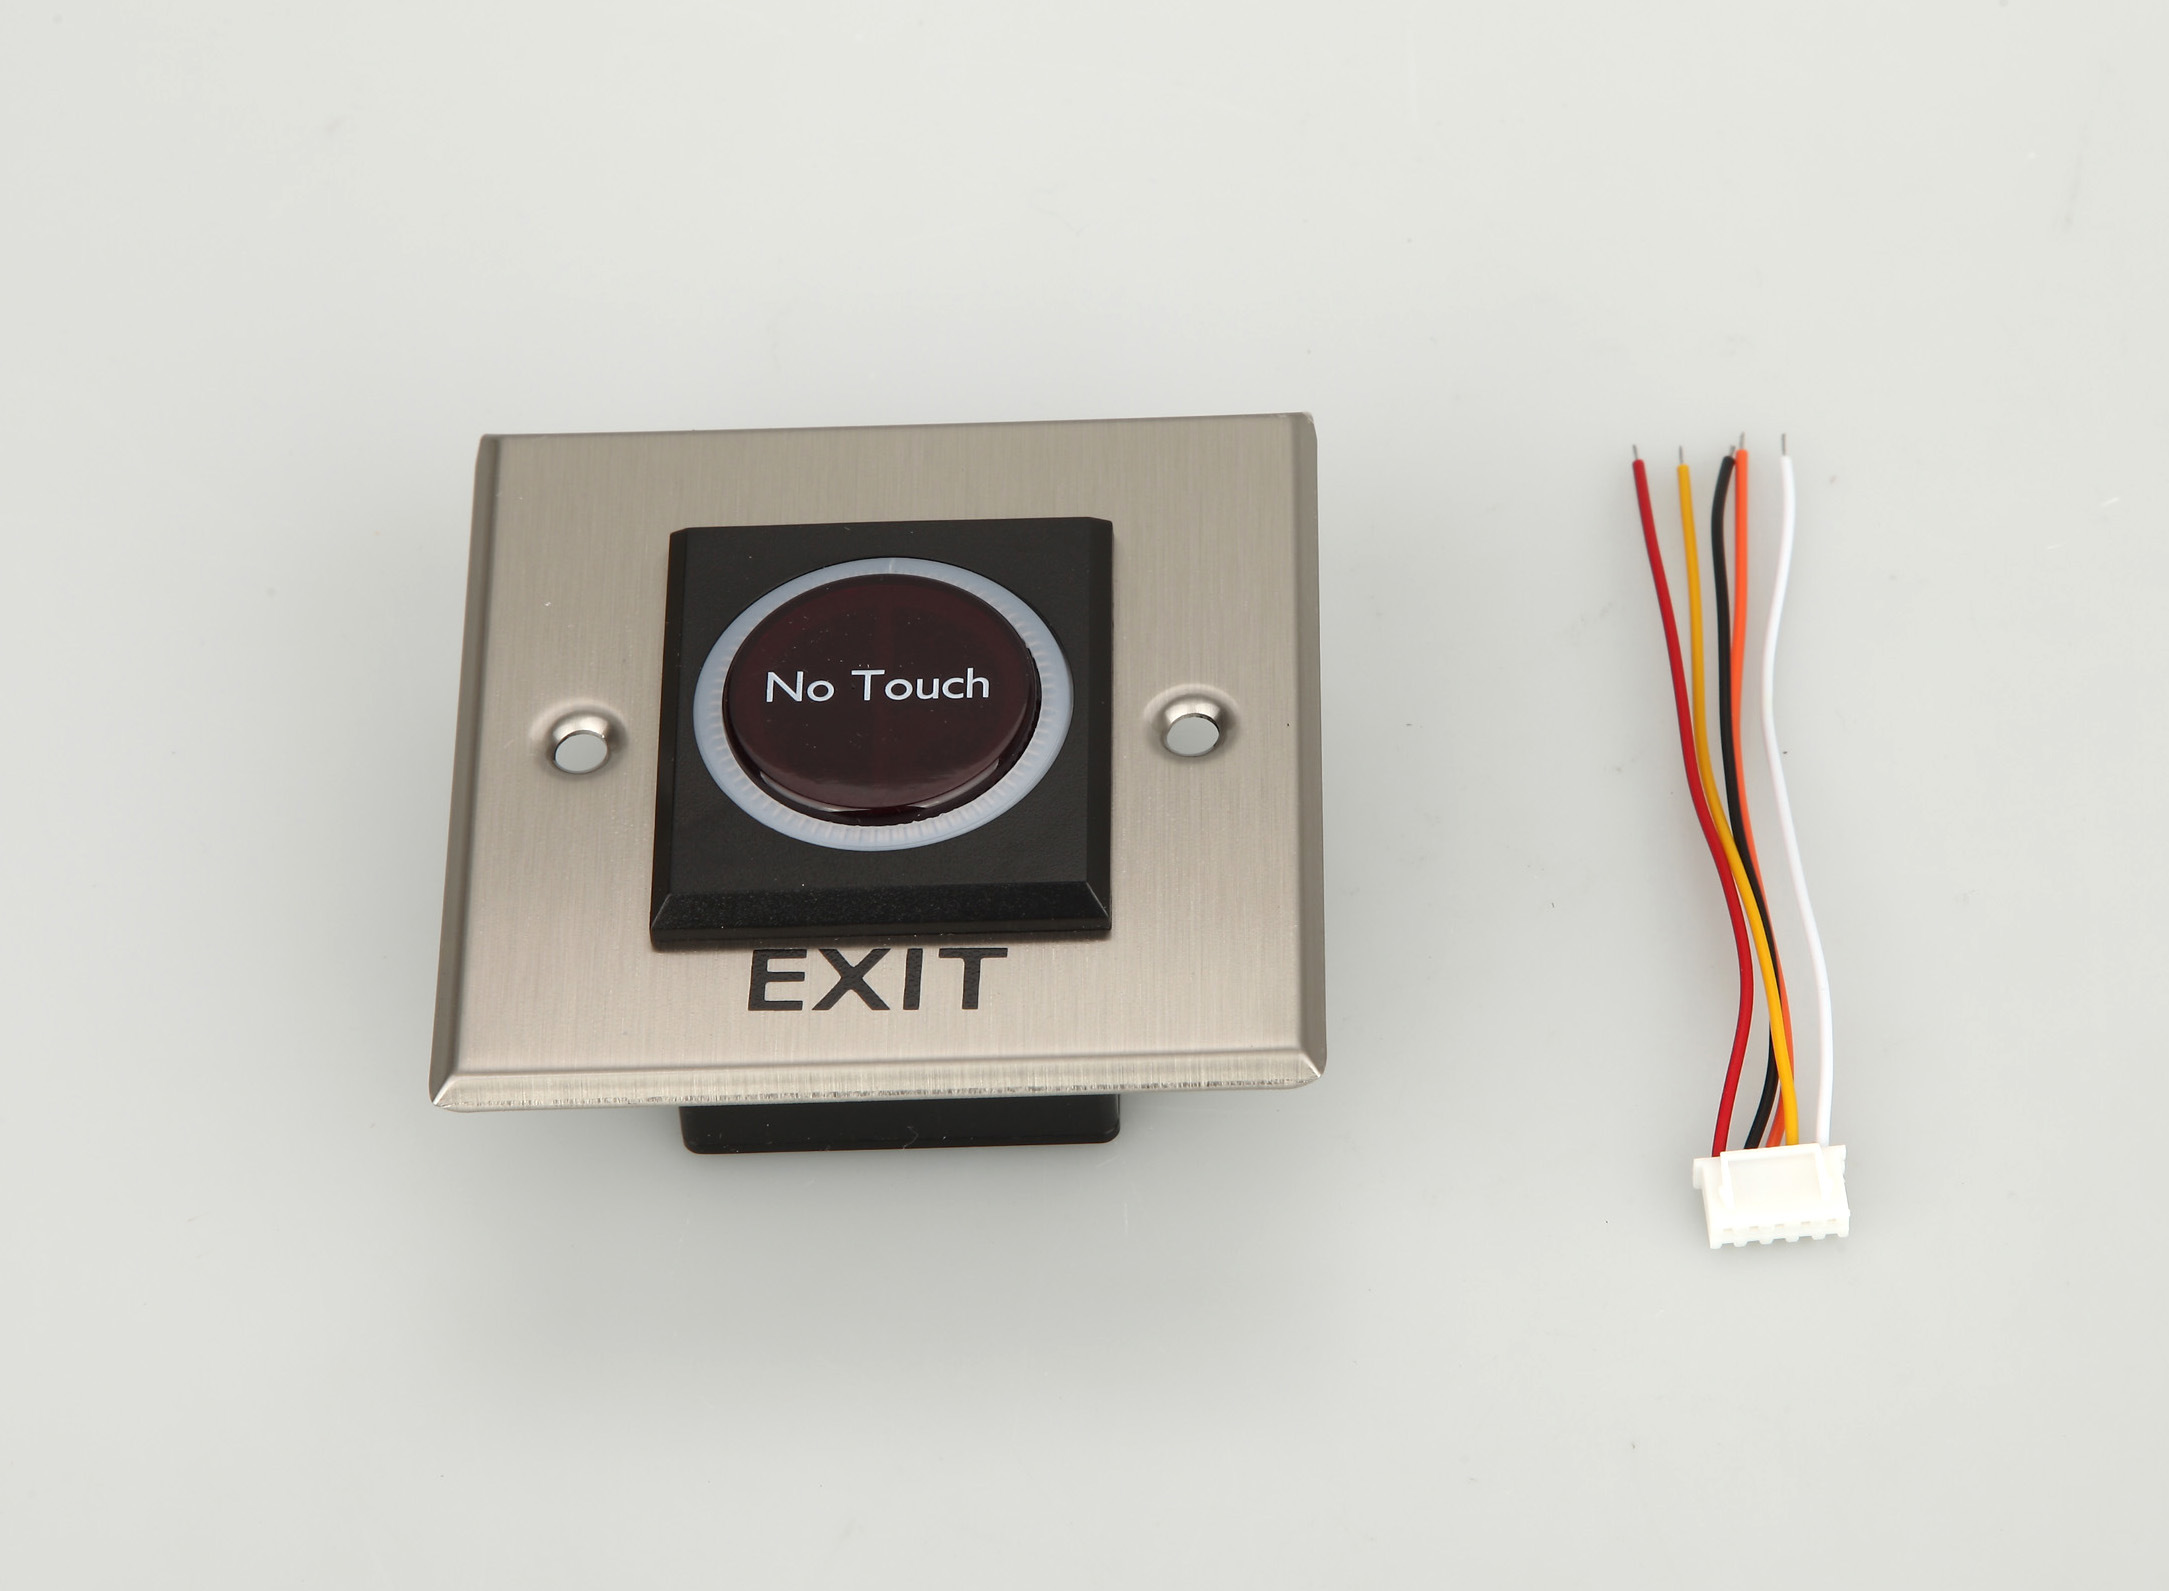 China Factory Low Price Door Release Switch Touch Screen Exit Electronic Button